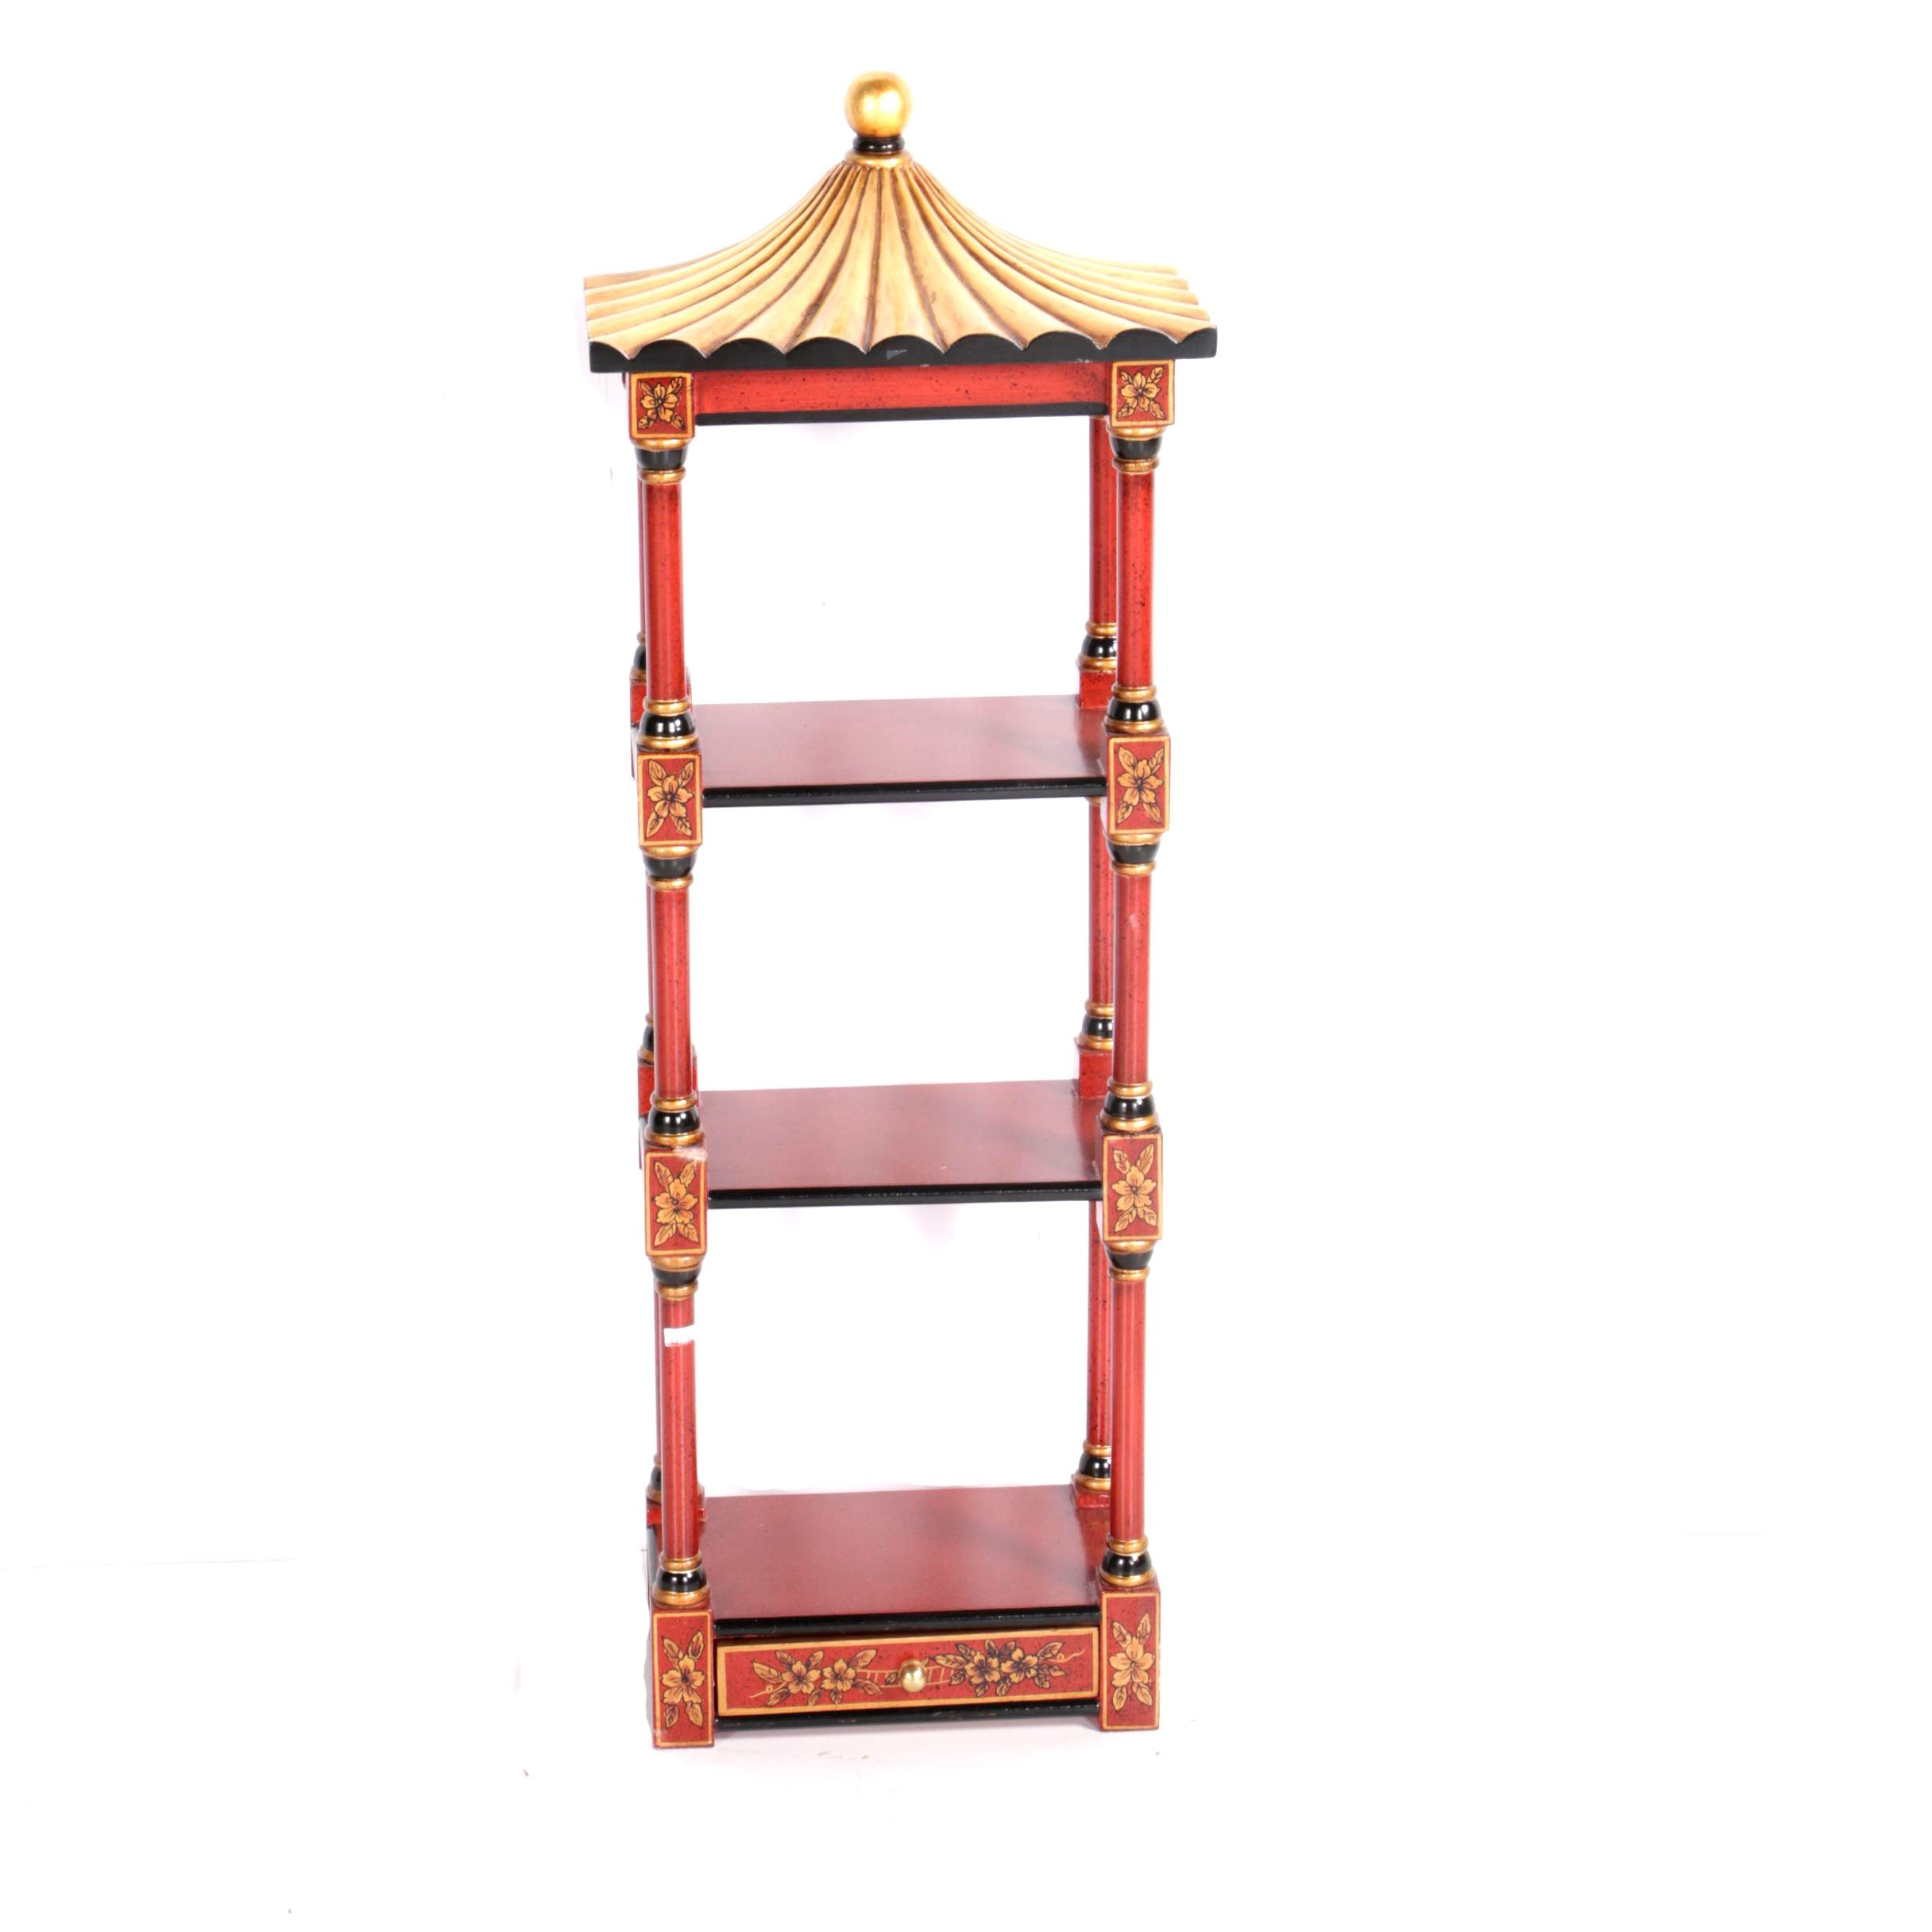 Chinoiserie Style Accent Wall Hanging Shelf